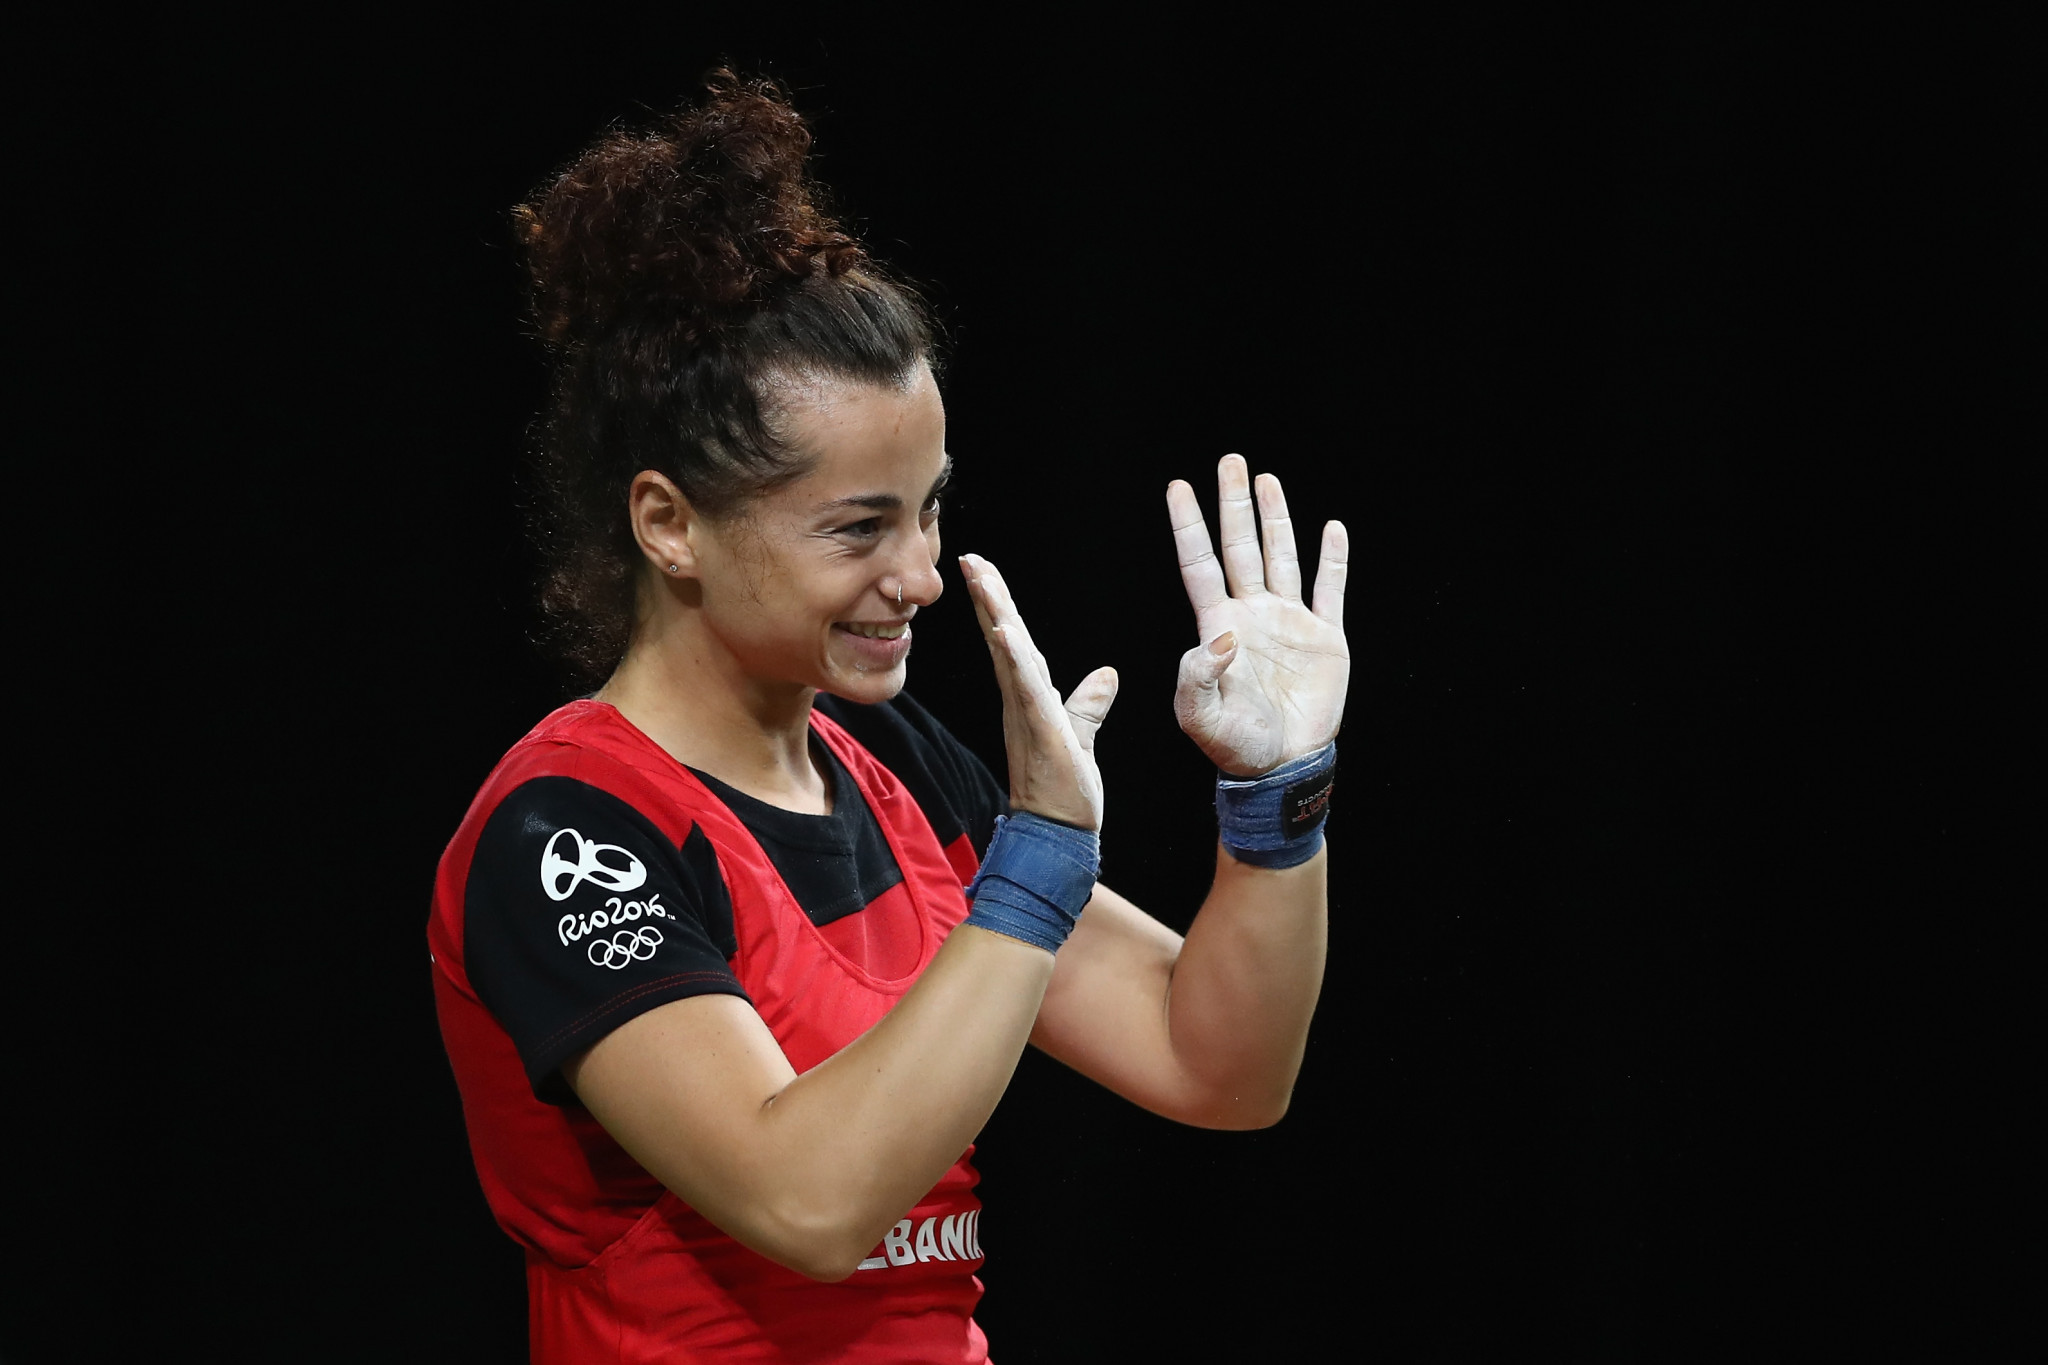 European weightlifting gold for Poland and Georgia as Albanian Olympian fails test